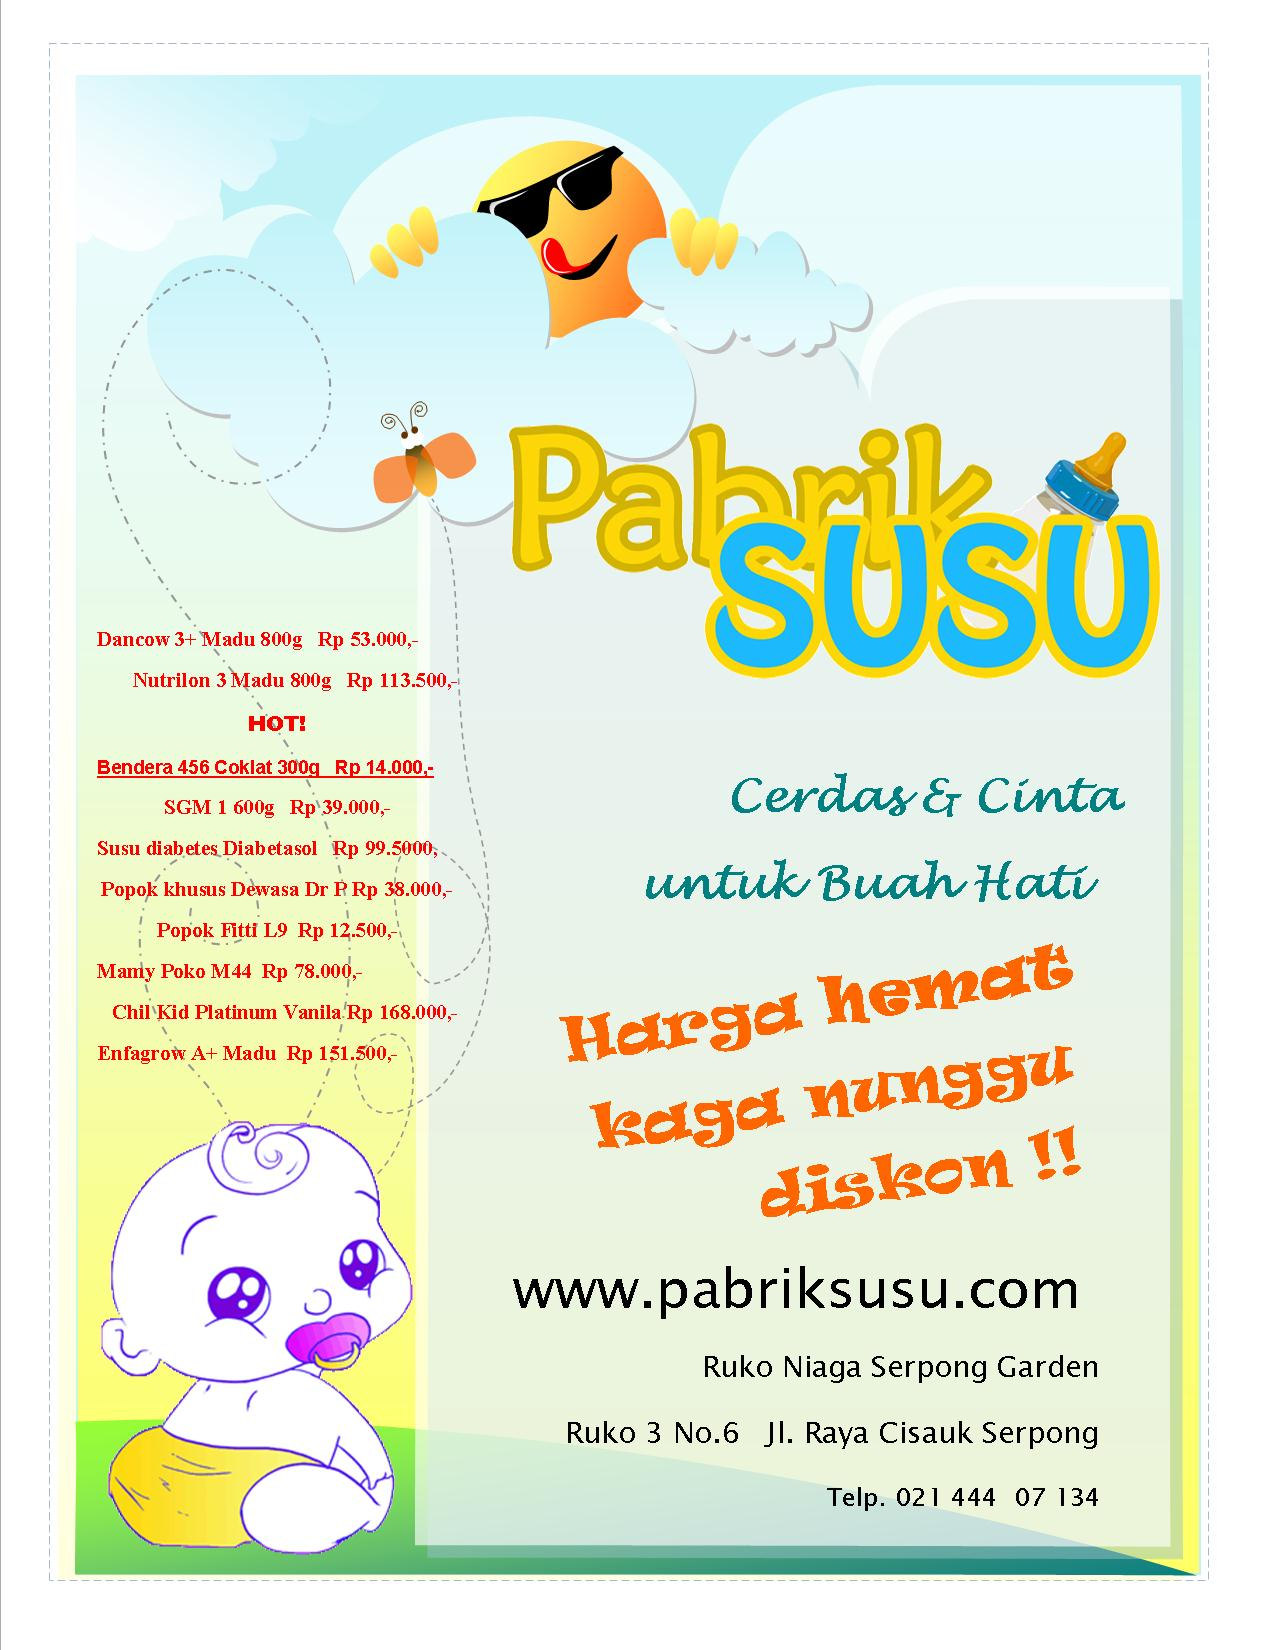 Pabrik SUSU 'soft launching'!!